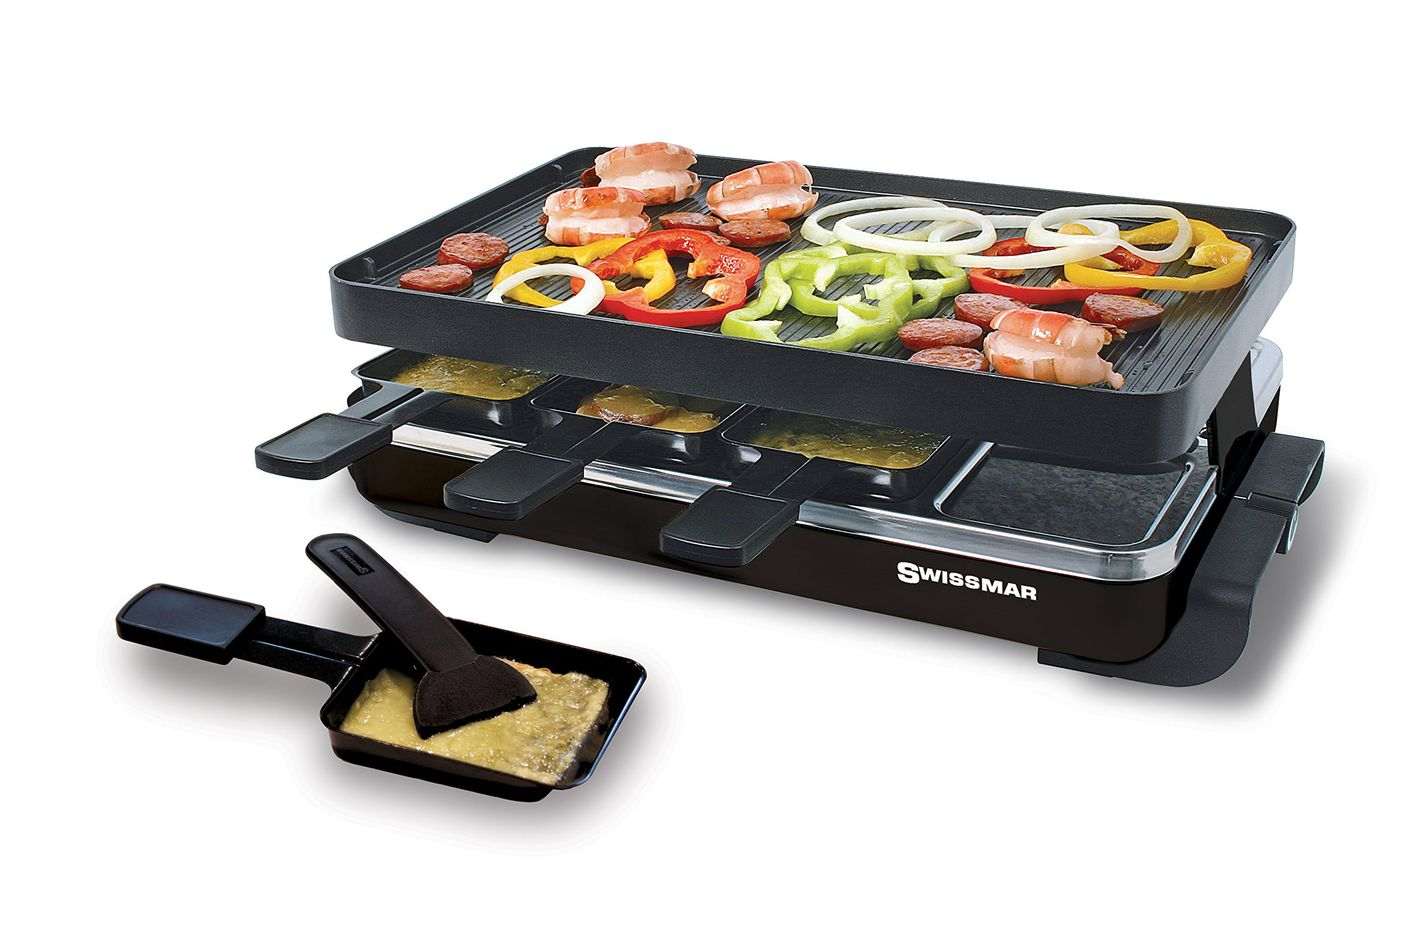 Swissmar KF-77041 Classic 8-Person Raclette with Reversible Cast Aluminum Non-Stick Grill Plate/Crepe Top, Black